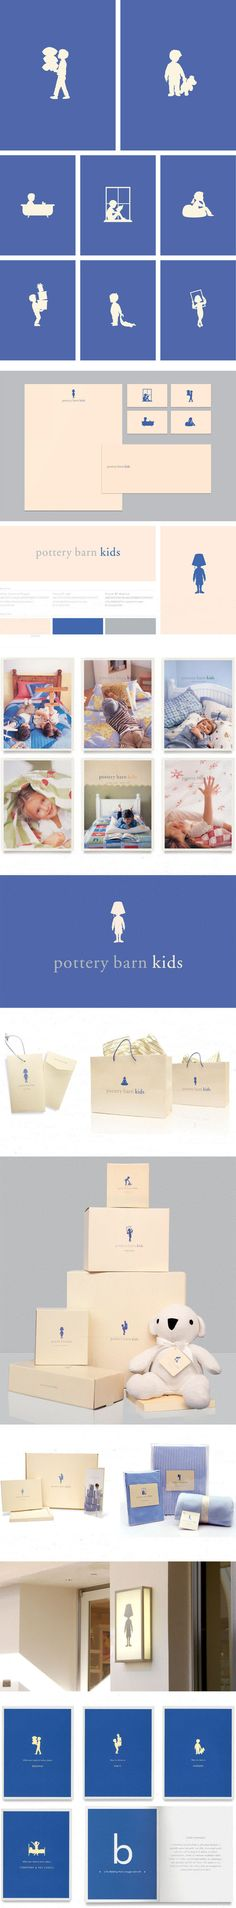 Who doesn't like Pottery Barn? #packaging #branding #marketing PD